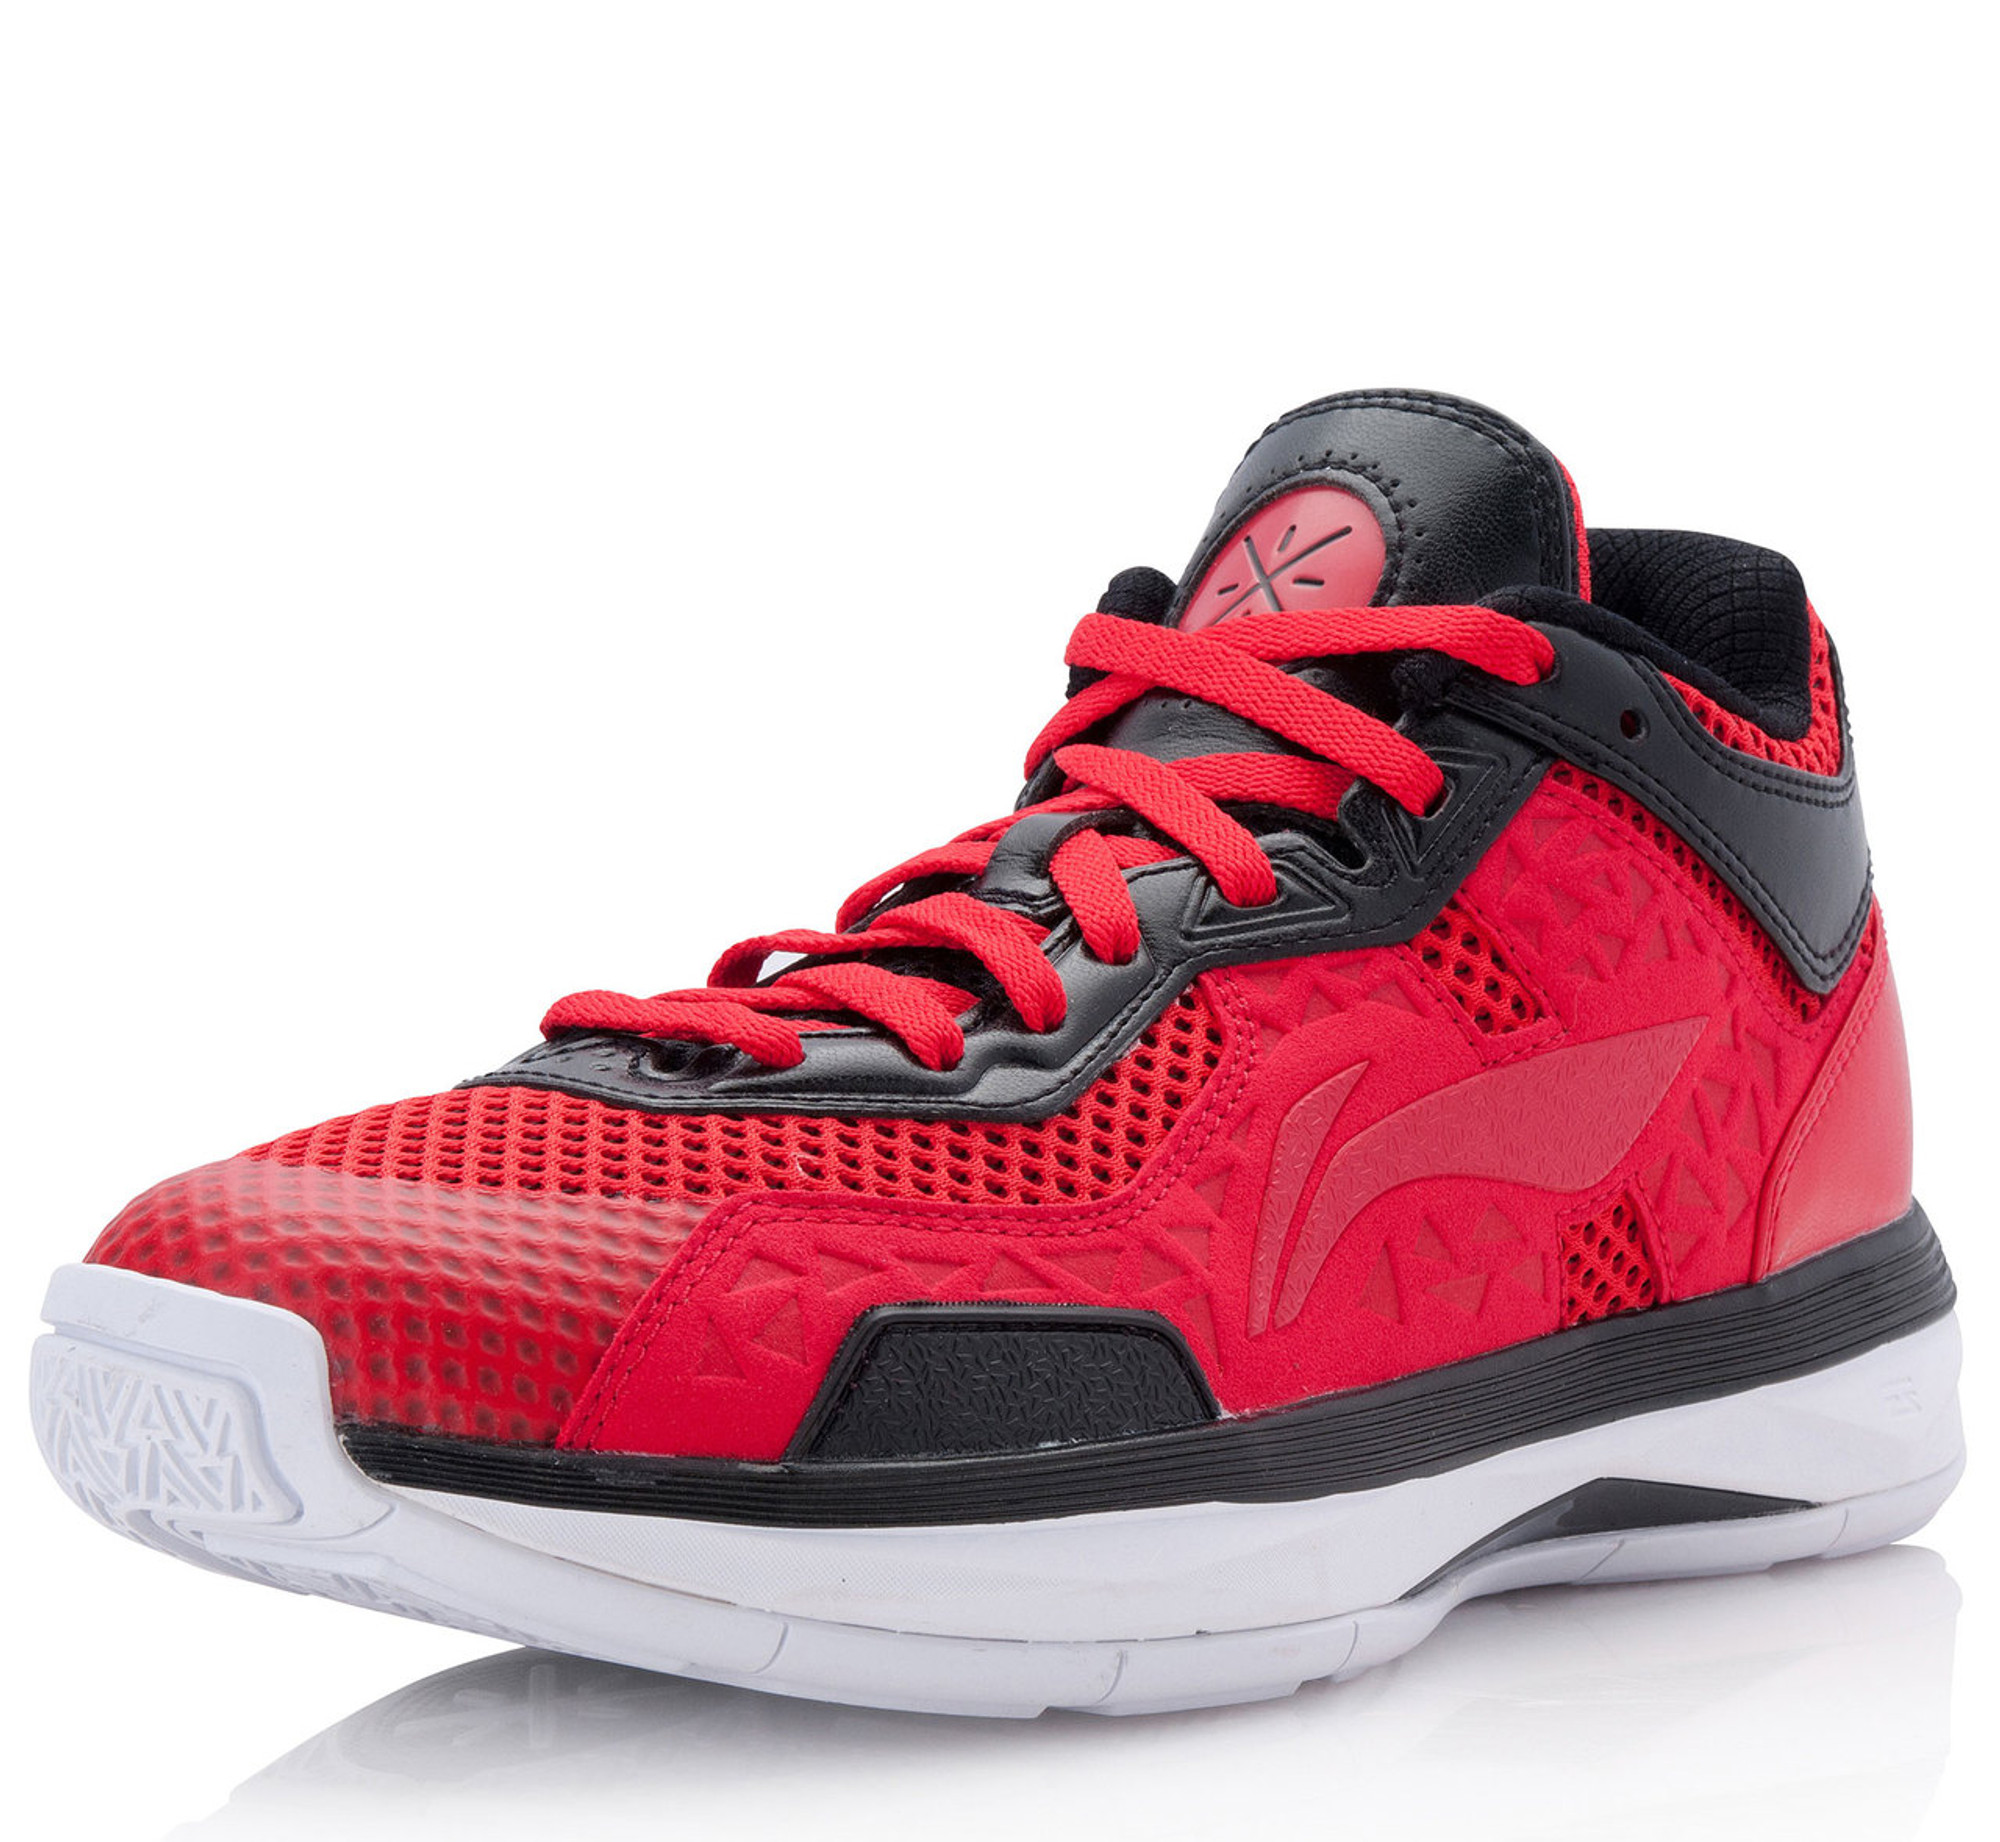 Way Of Wade All Star Shoes For Sale